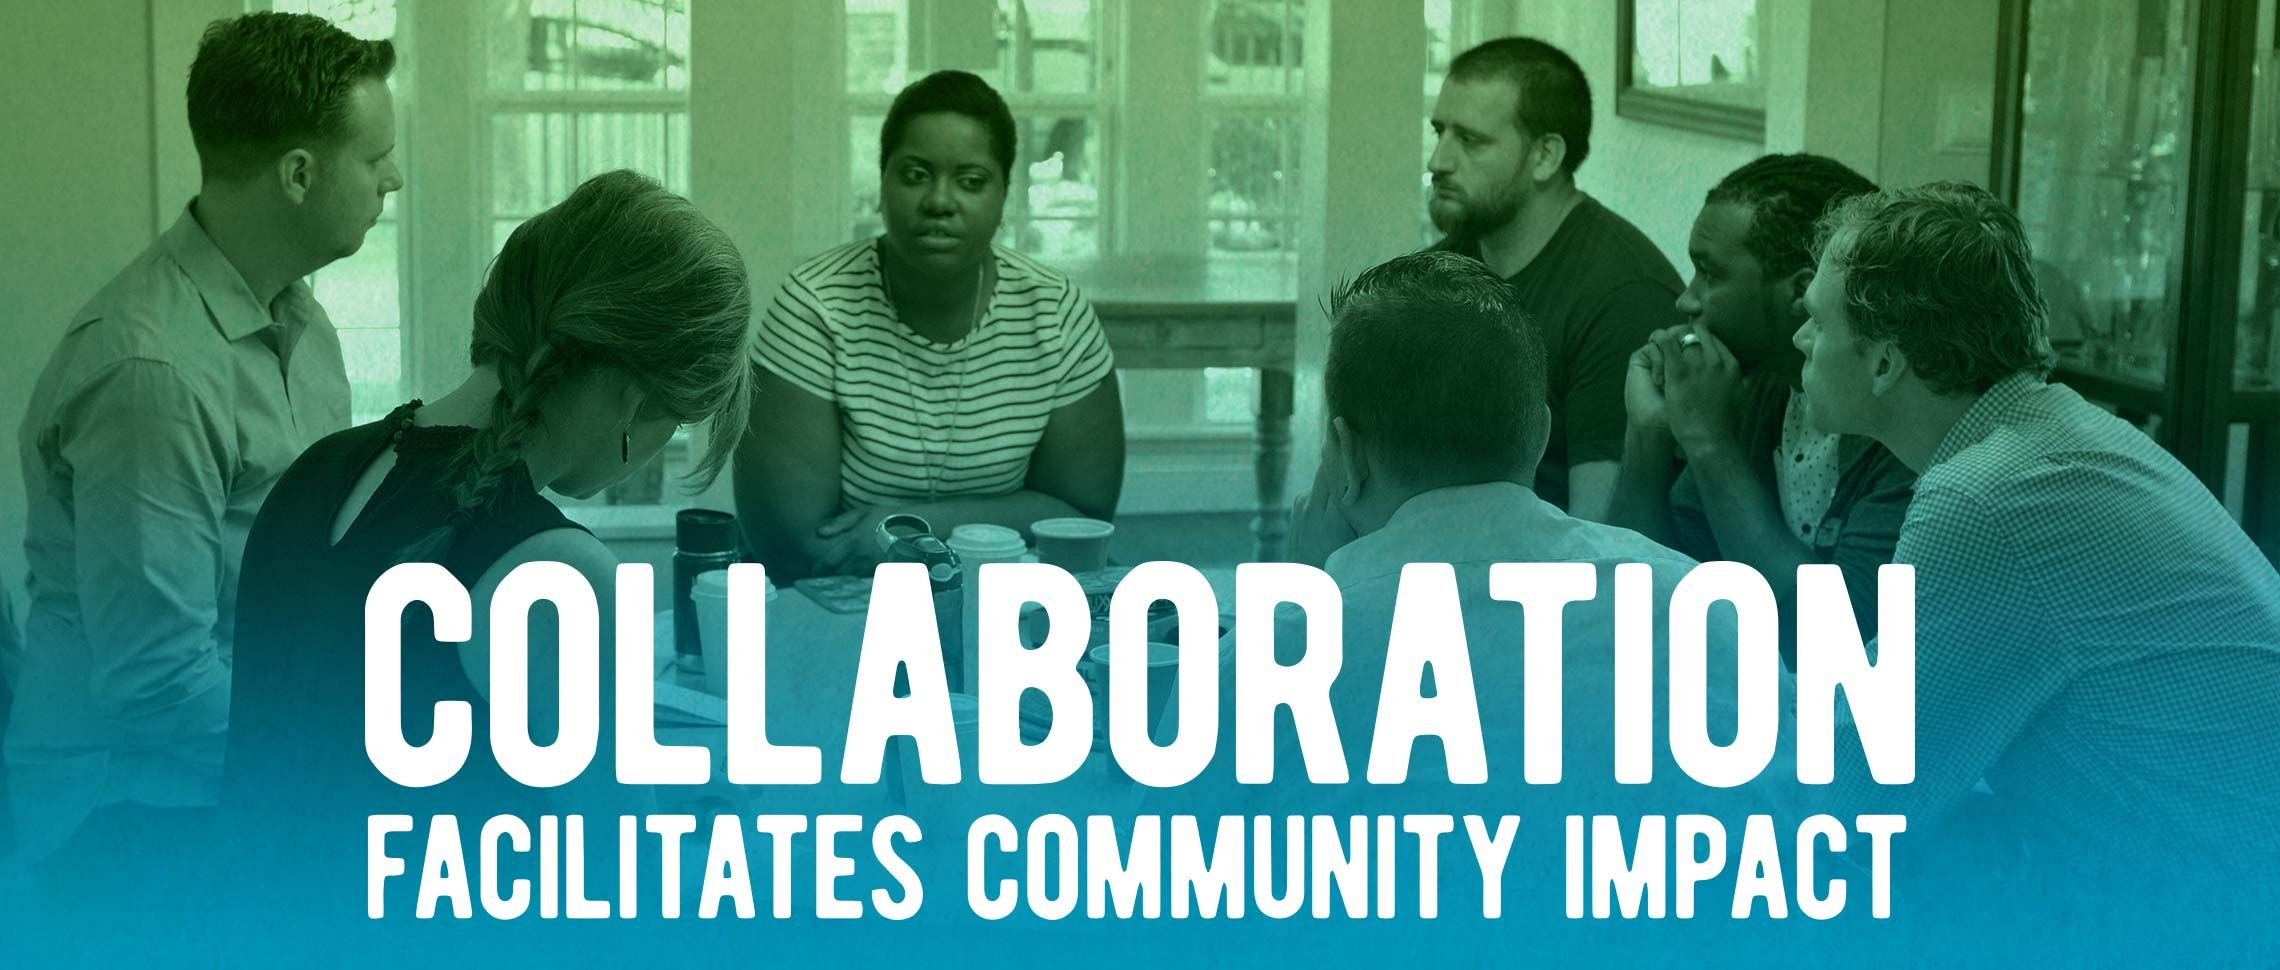 Collaboration facilitates community impact